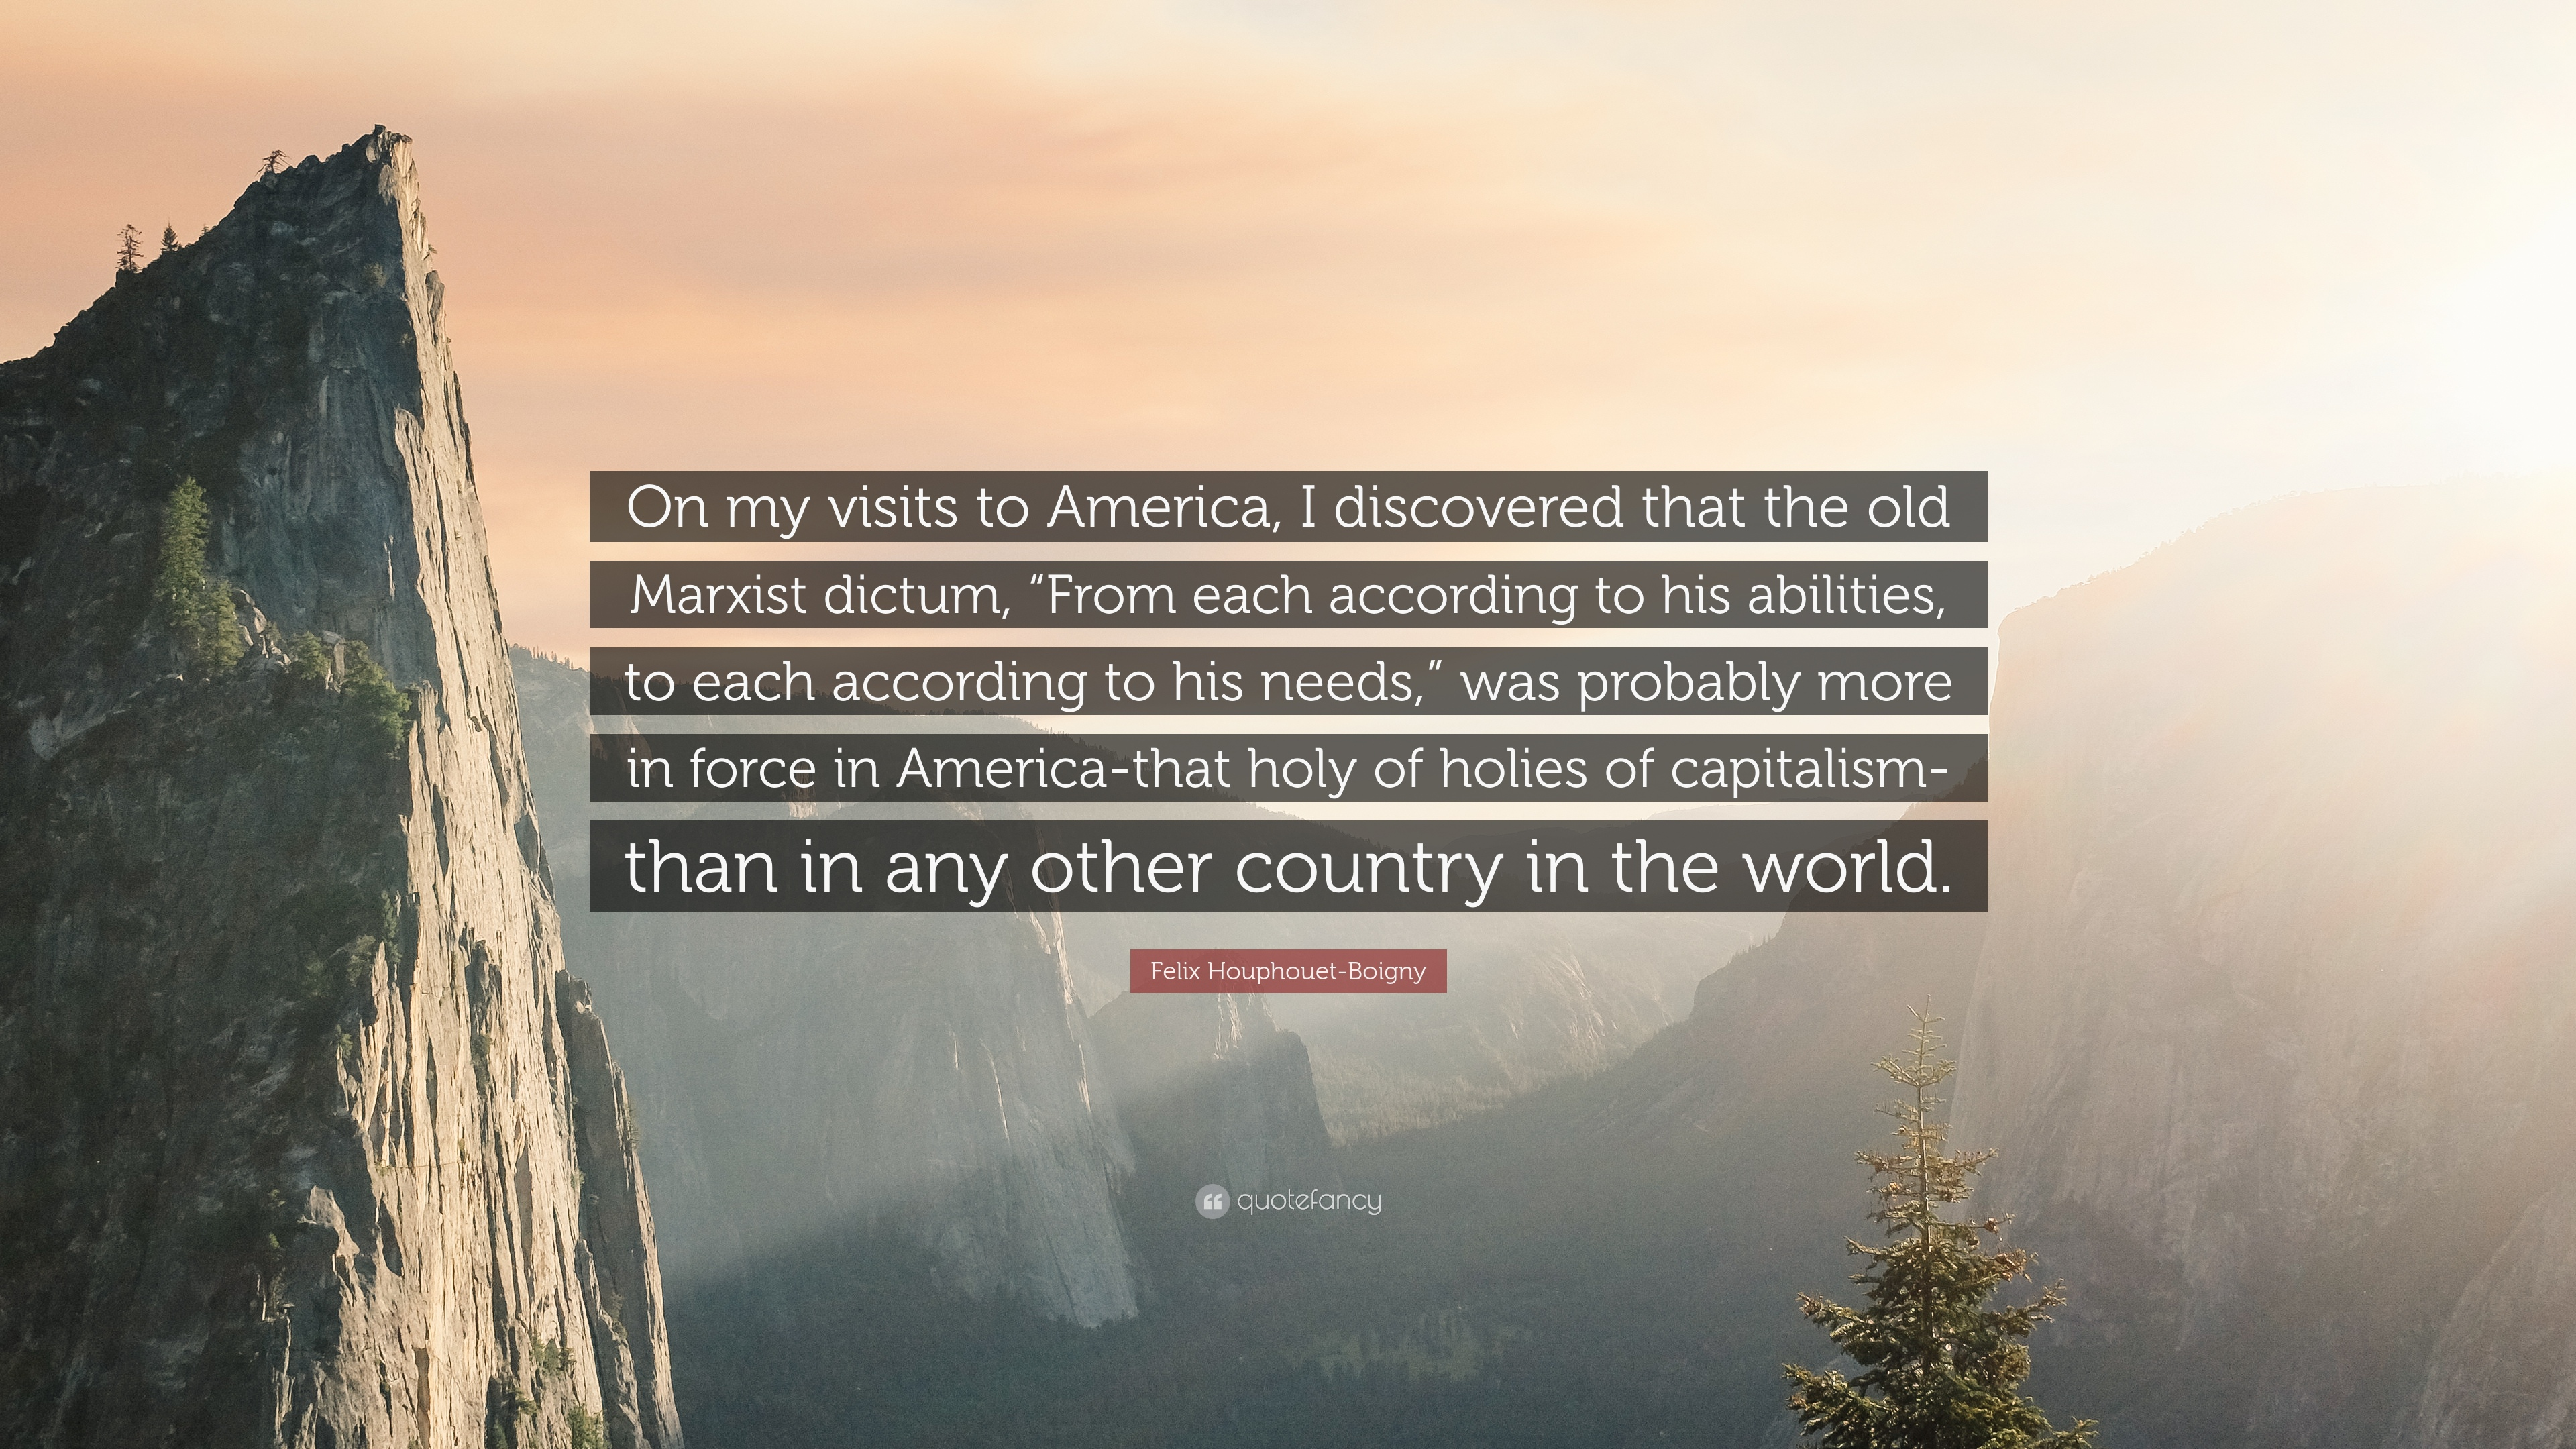 felix houphouet boigny quote on my visits to america i discovered